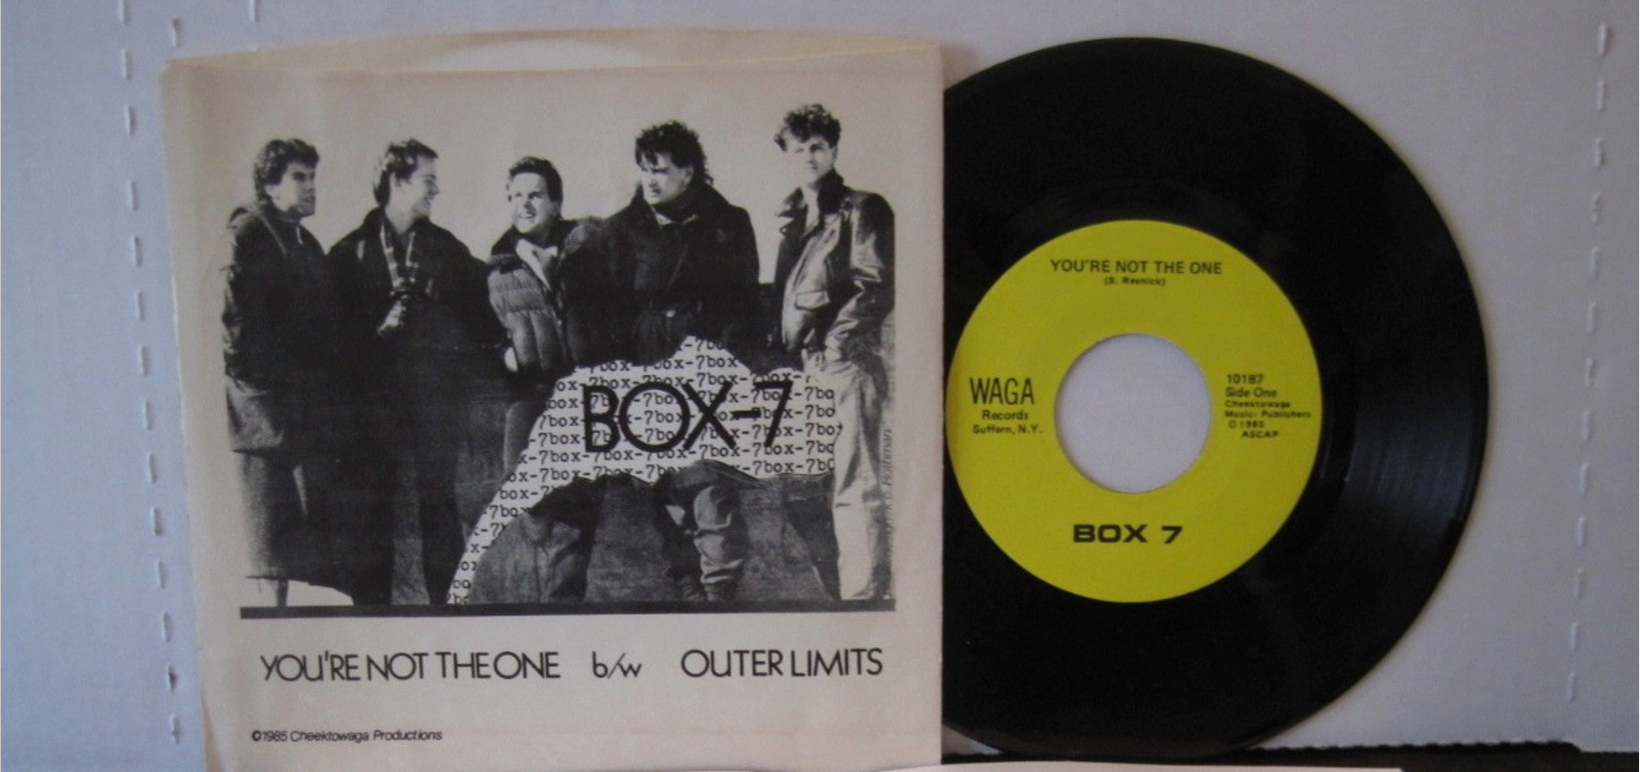 Box 7 | Vinyl - You're Not The One